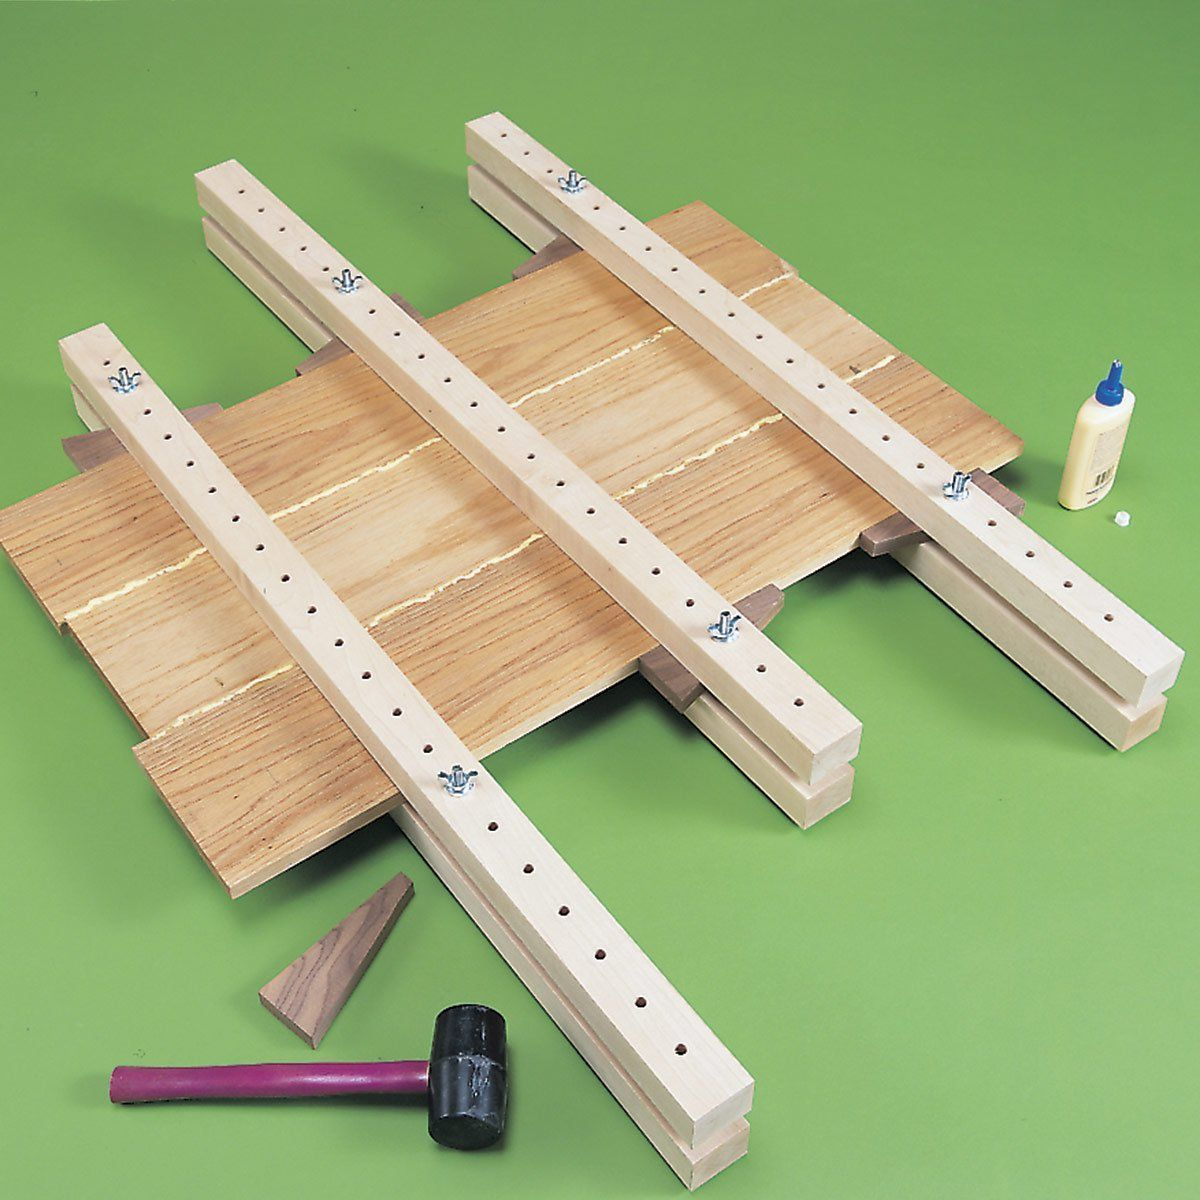 shop-made edge-gluing clamps   wood   woodworking tips